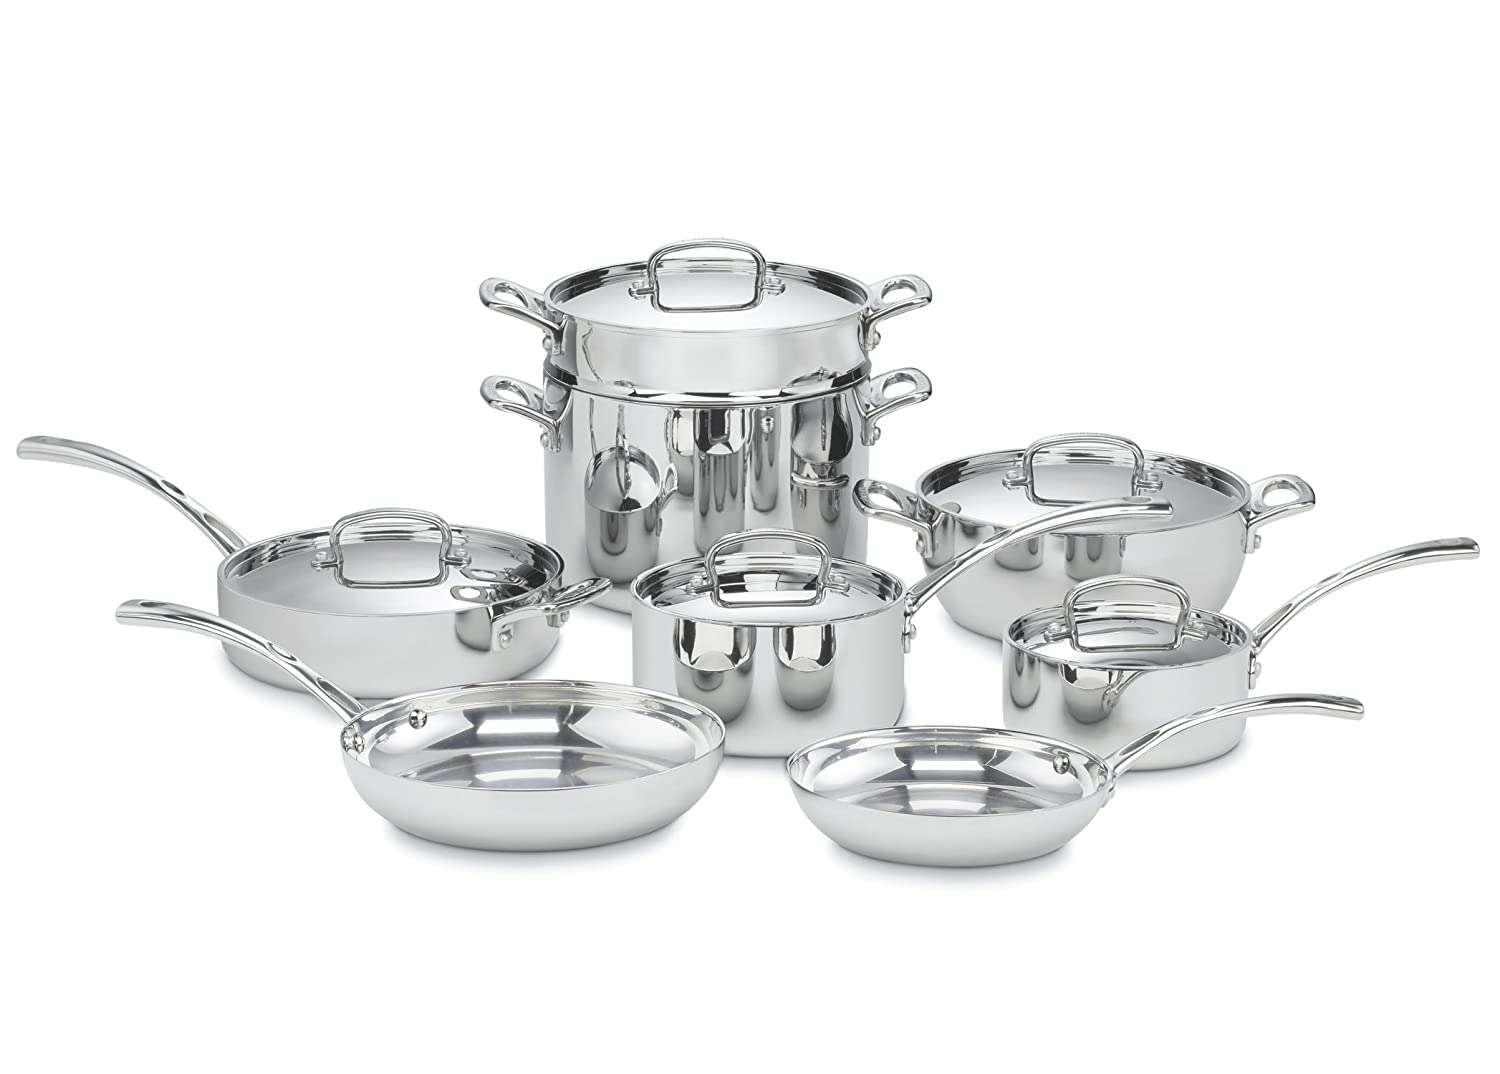 Cuisinart French Classic Tri-Ply Stainless 13-Piece Cookware Set